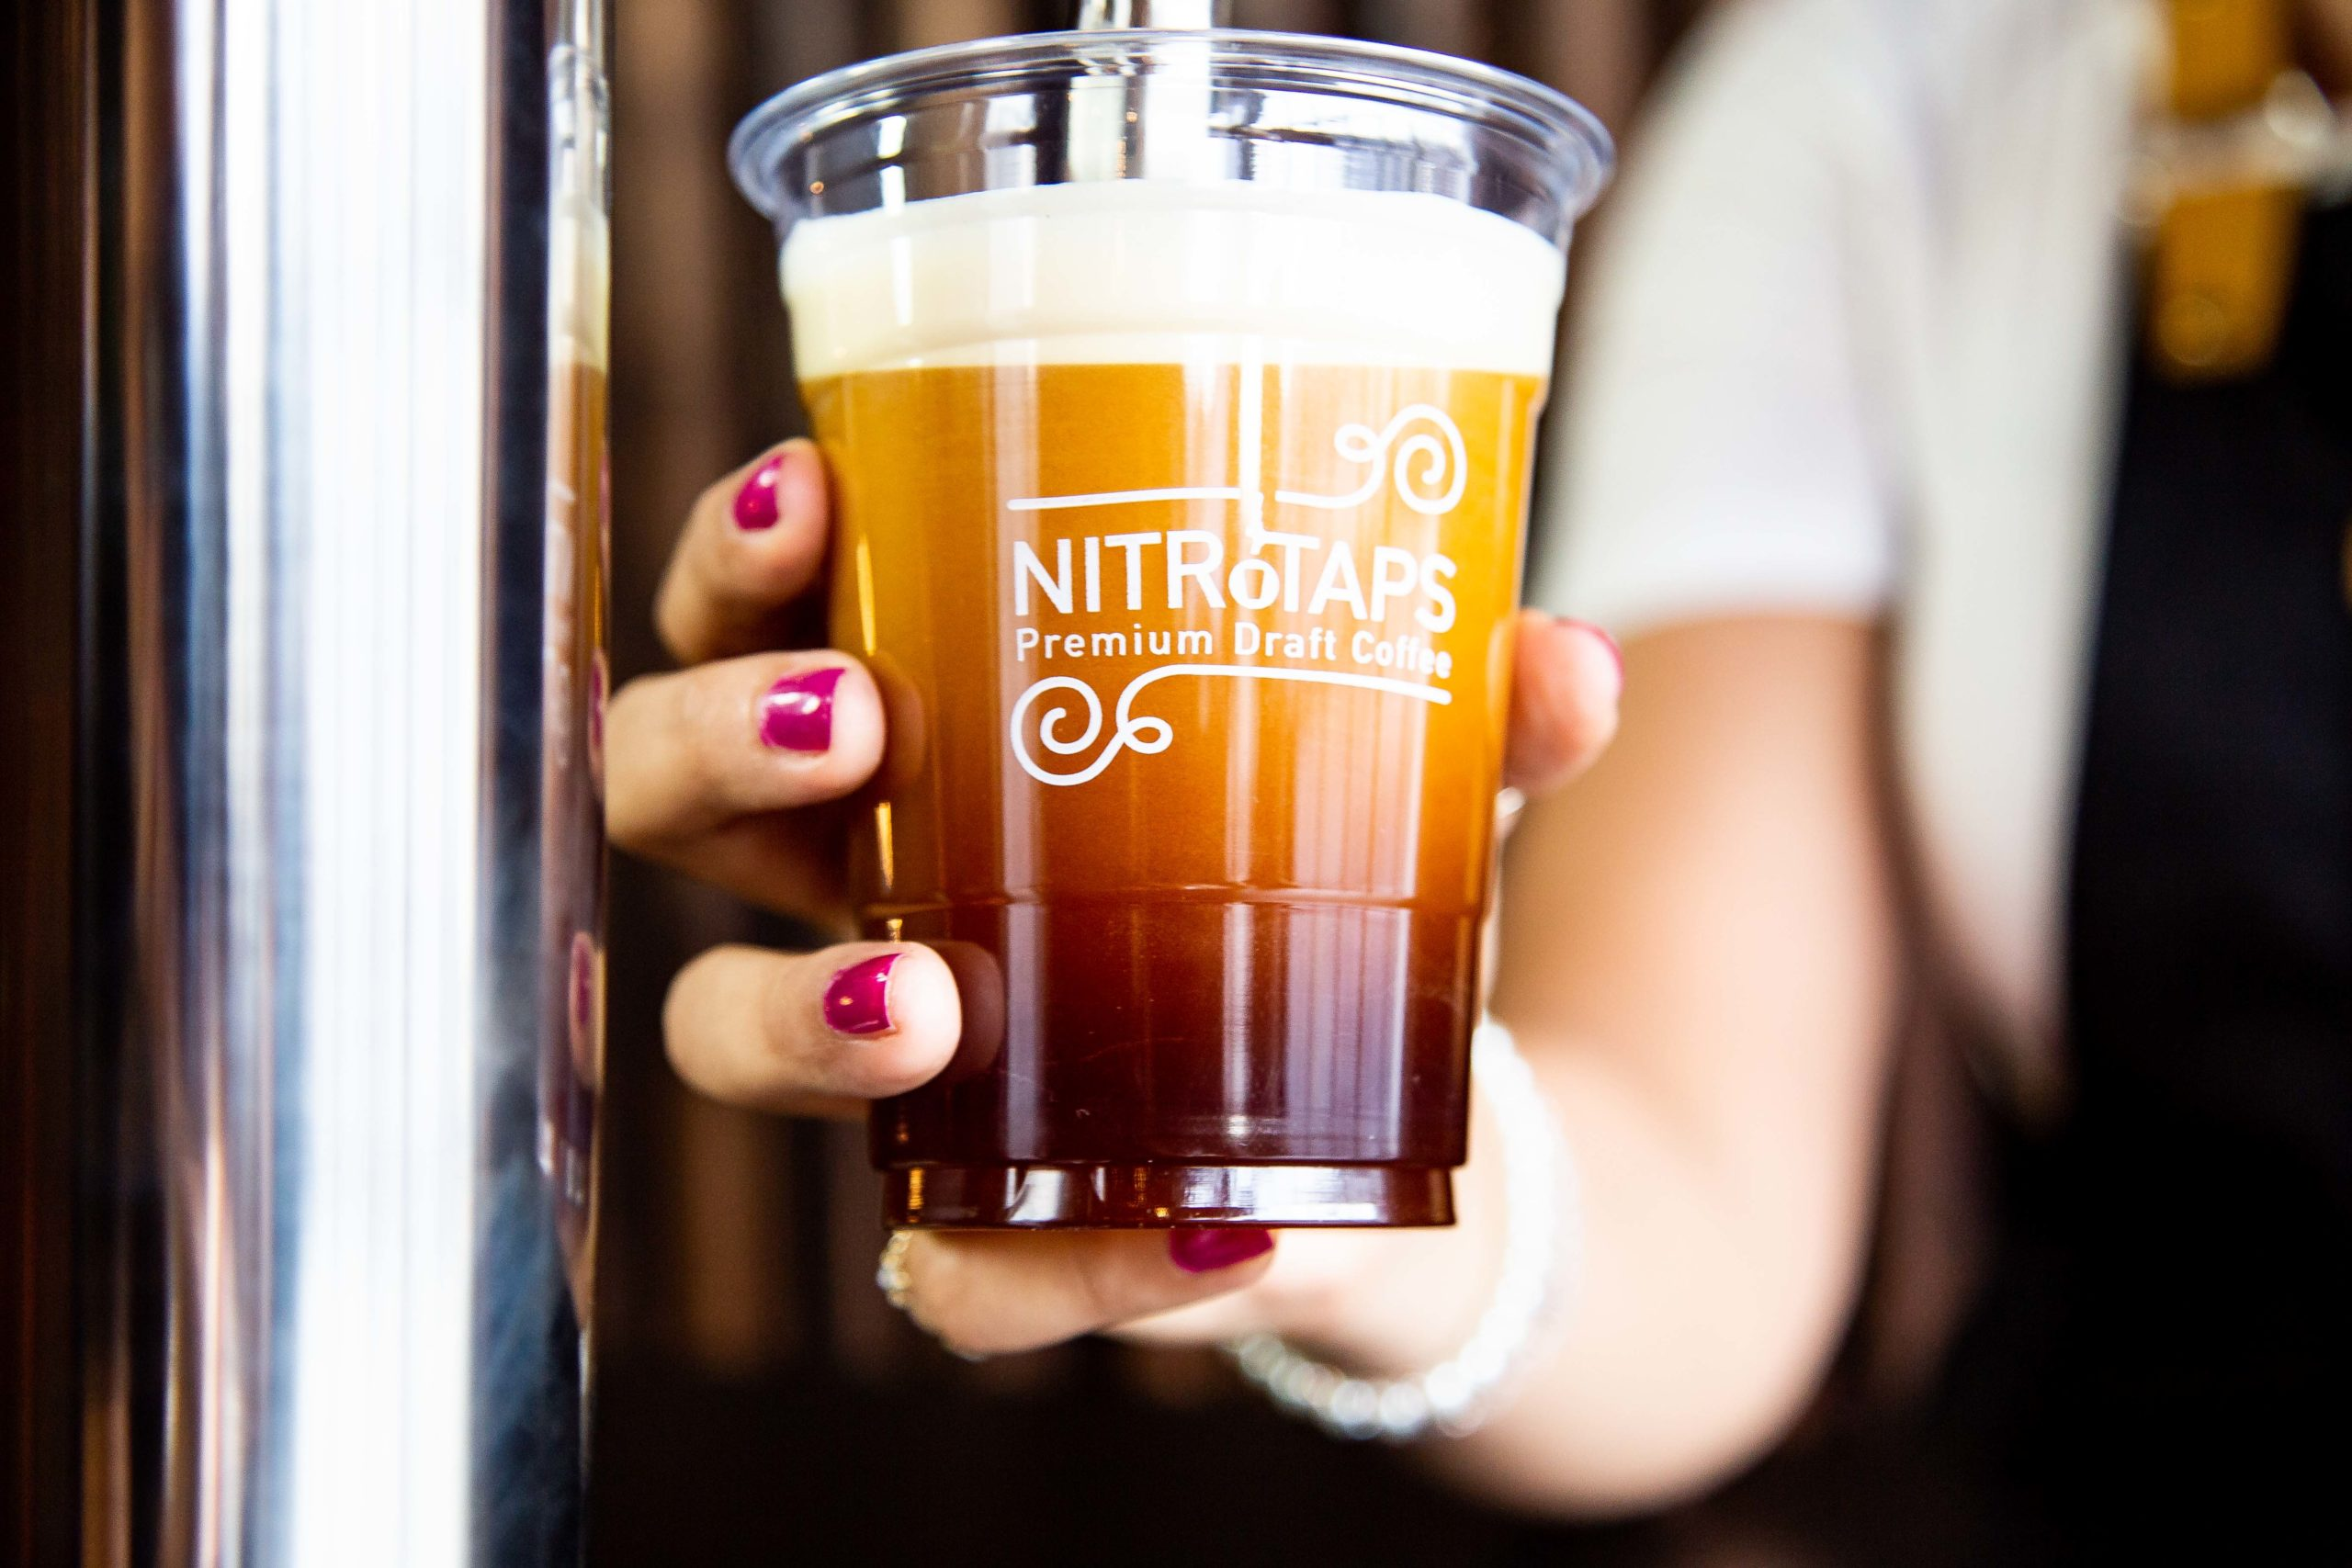 NitroTaps Nitro Coffee Catering NYC